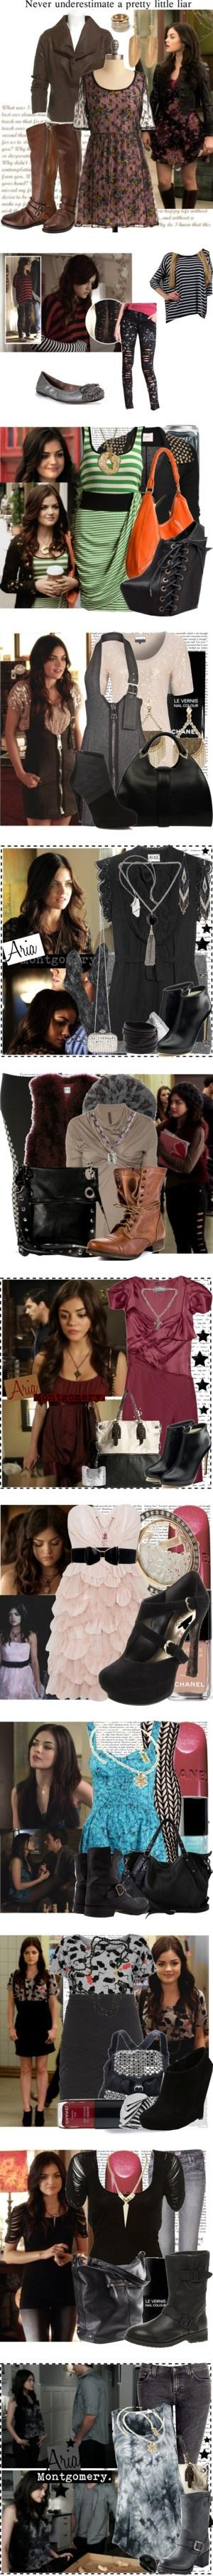 """""""Aria Montgomery"""" by sjjh ❤ liked on Polyvore by alejandra"""